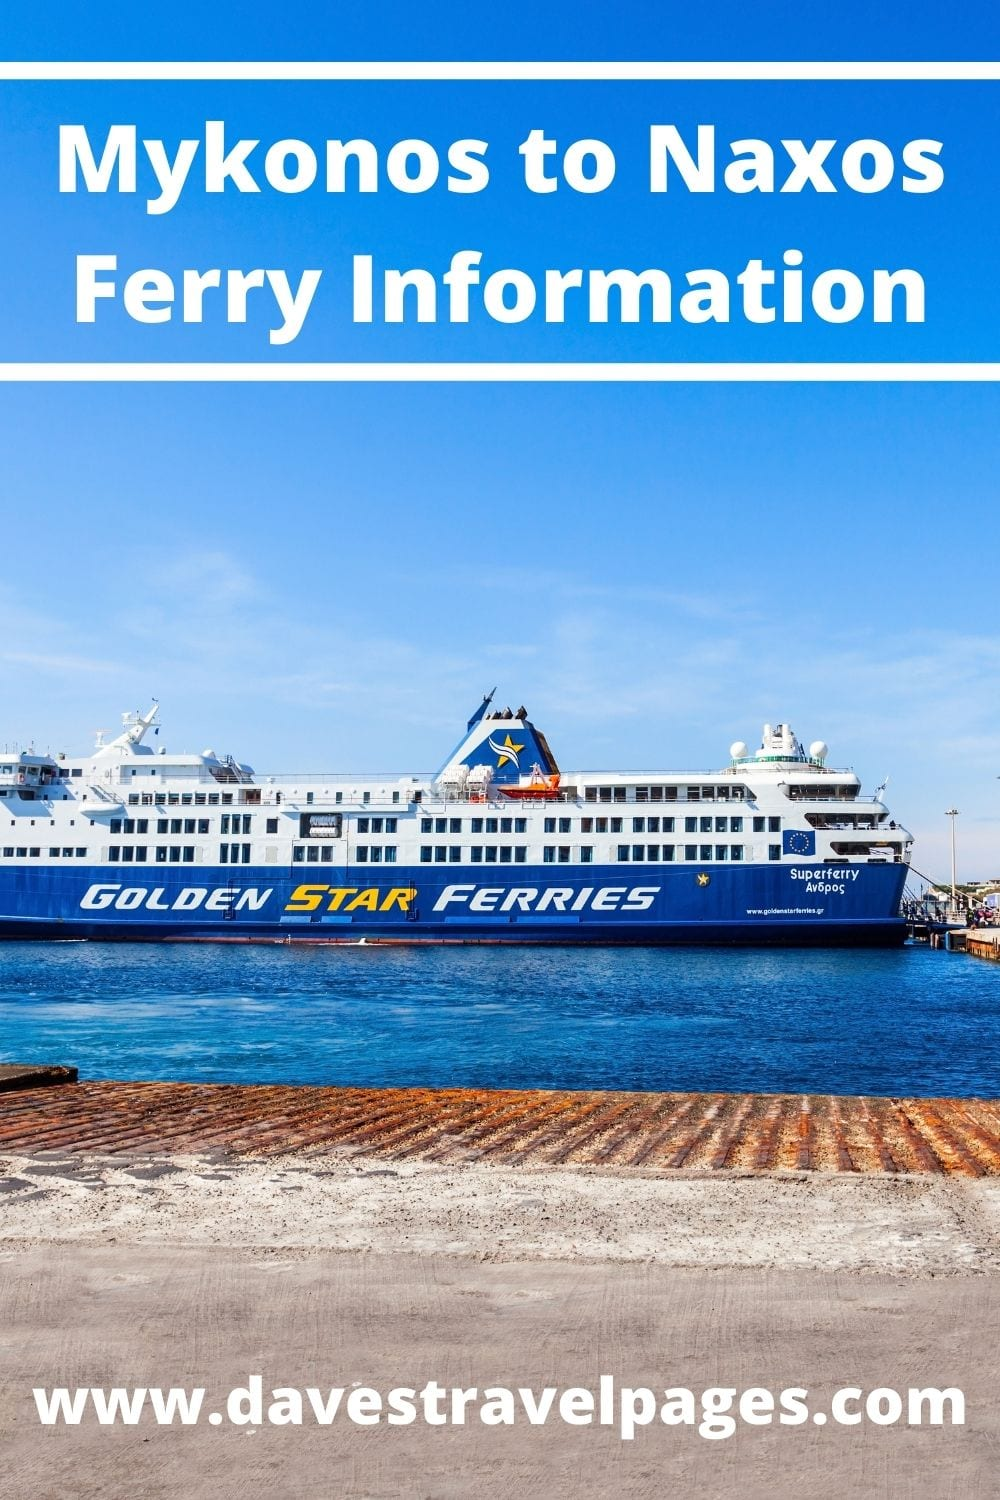 Mykonos to Naxos ferry guide and information